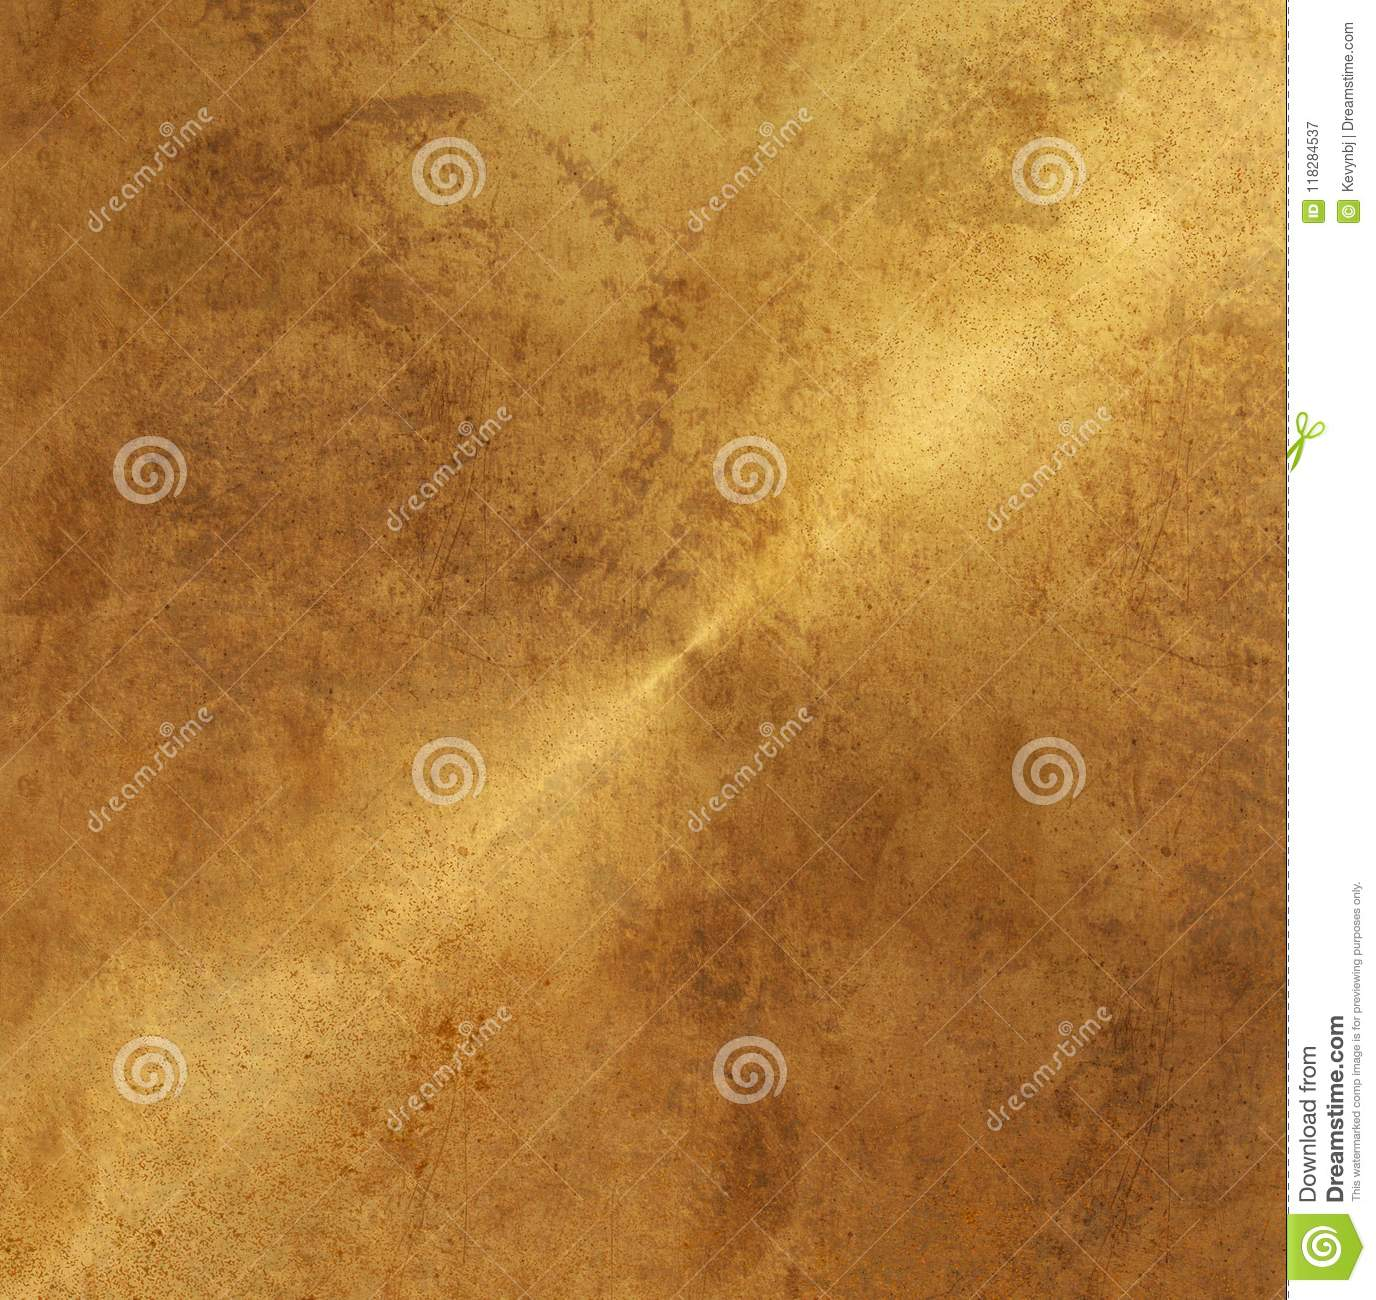 Download Bronze Grunge Background Texture Rustic Stock Image